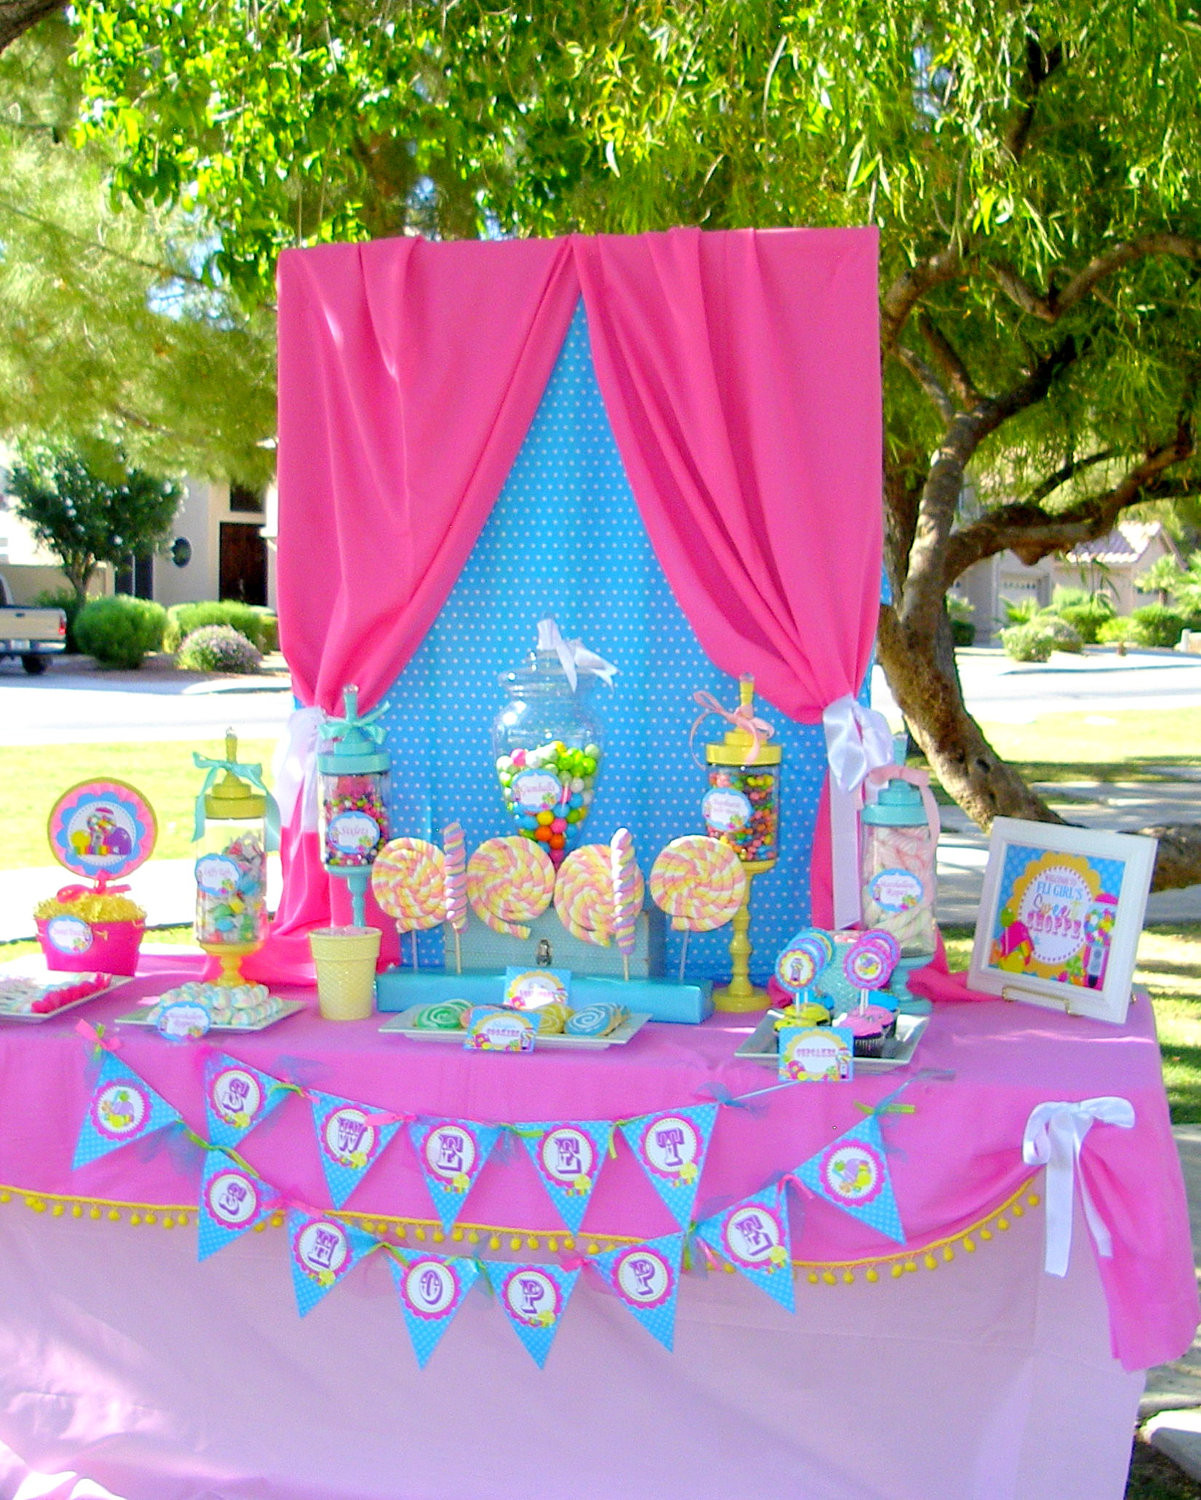 Best ideas about Birthday Party Theme . Save or Pin Lalaloopsy Birthday Party Ideas for Girls — CRIOLLA Now.